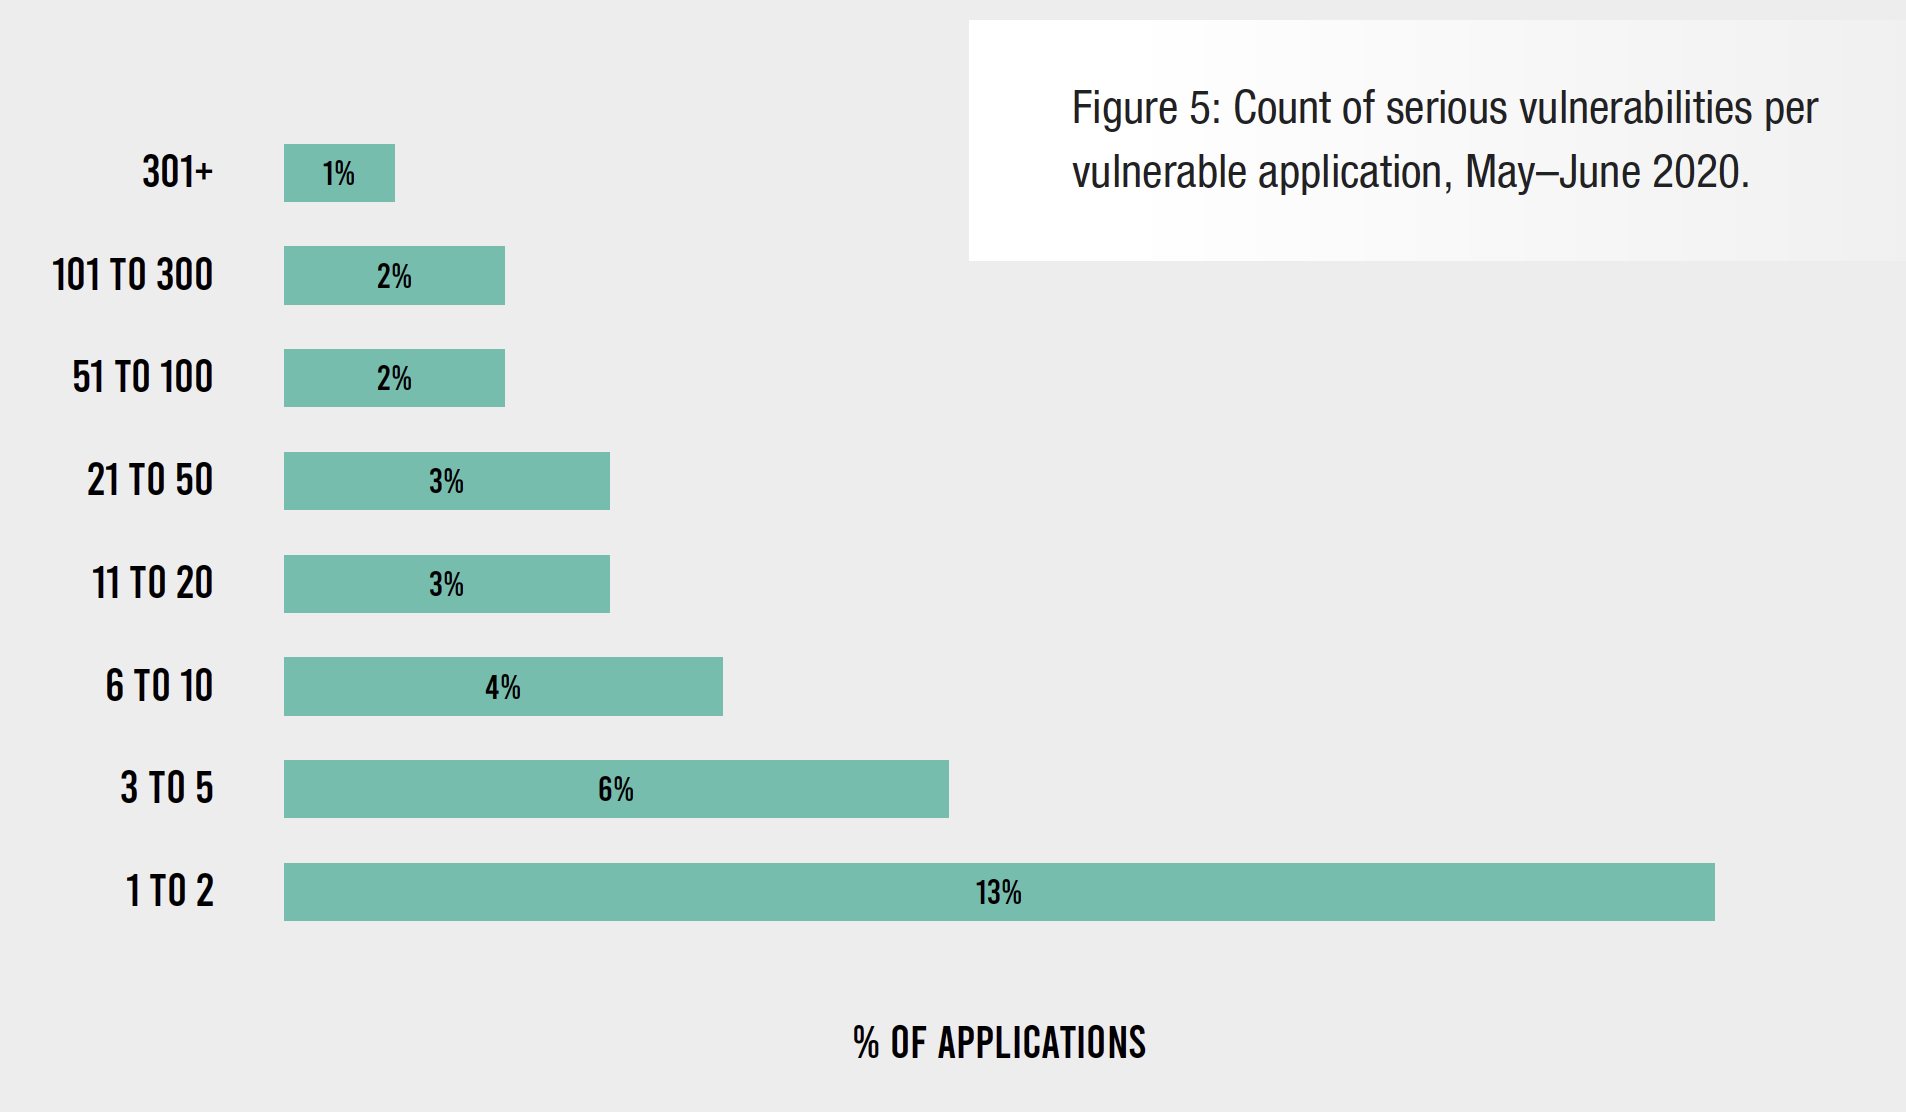 Figure 5: Count of serious vulnerabilities per vulnerable application, May–June 2020.